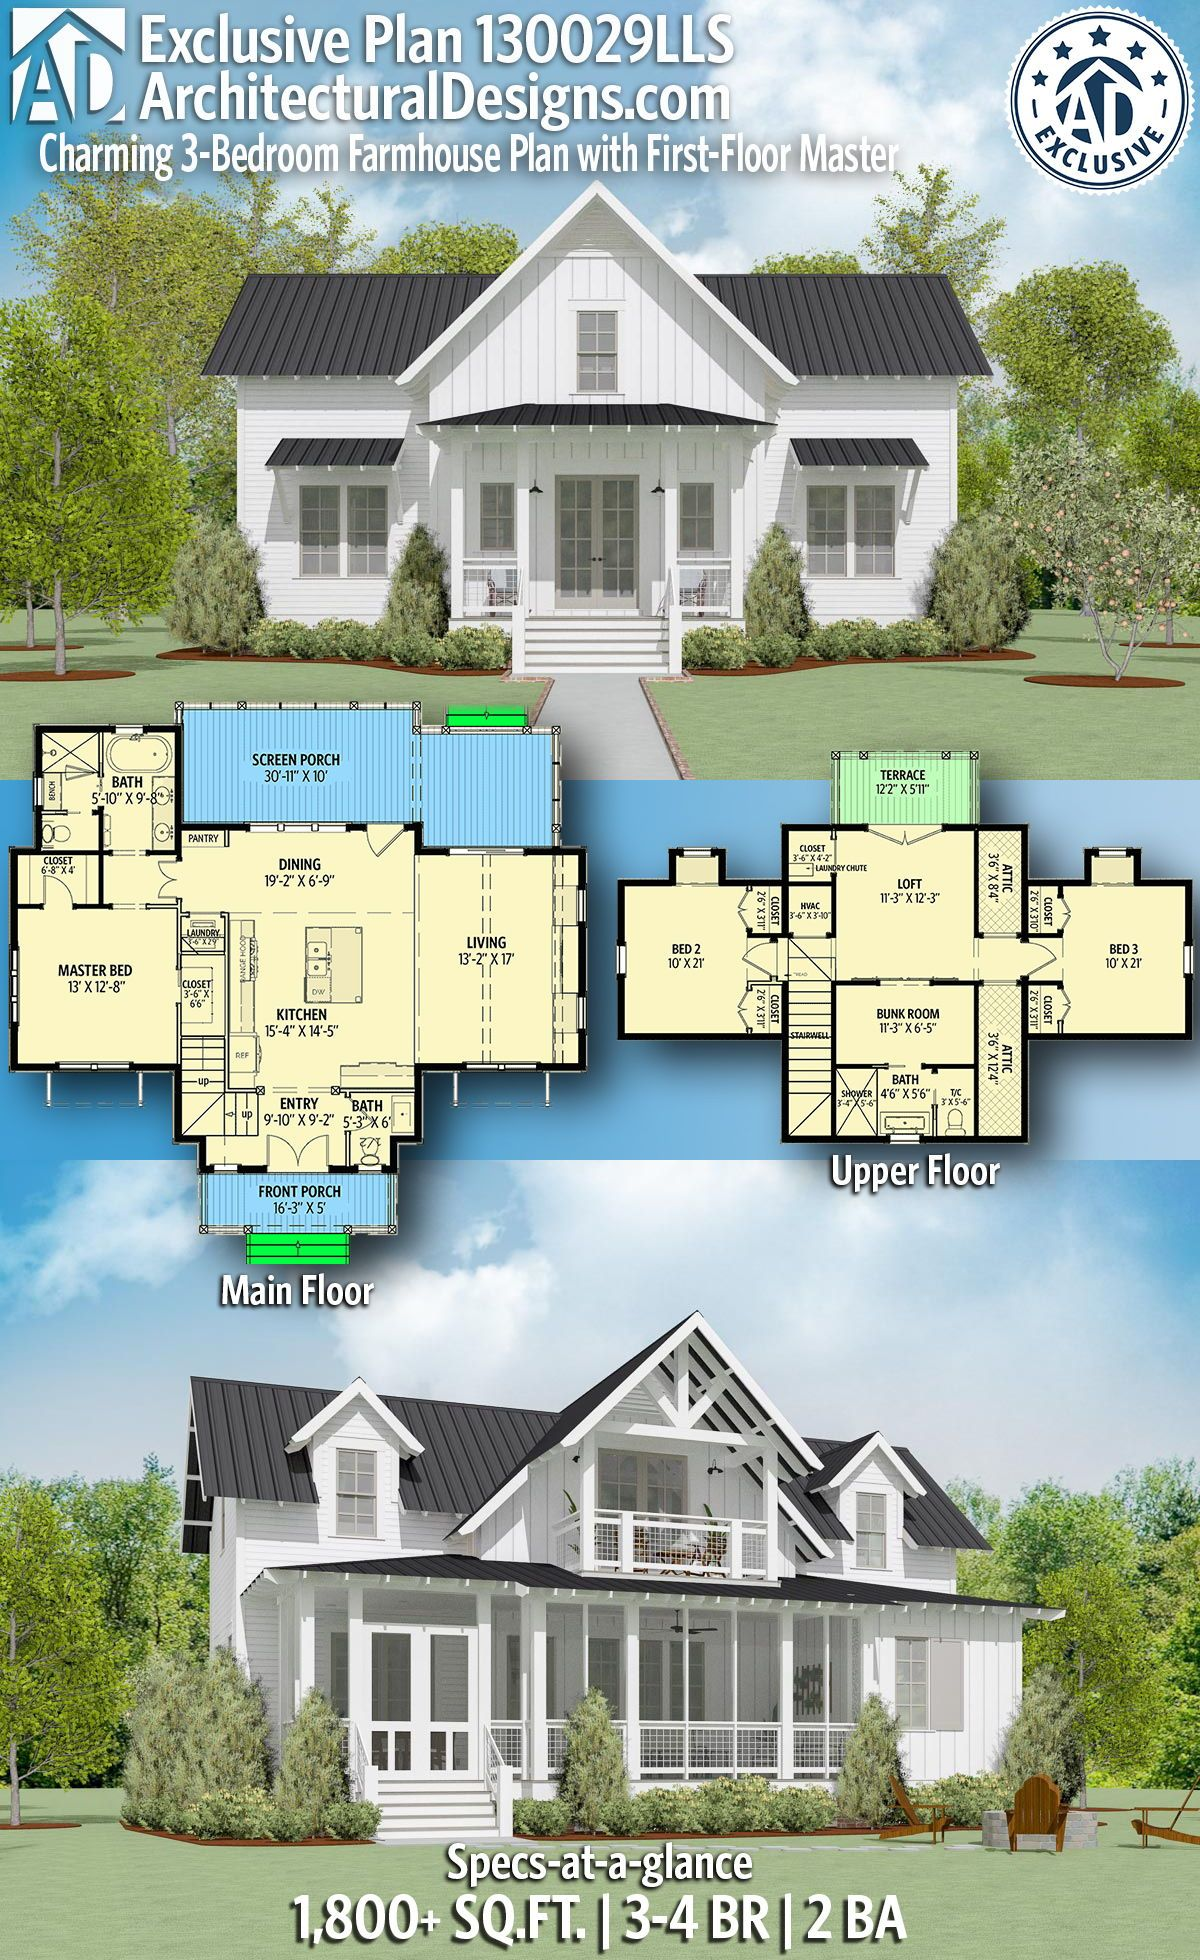 Introducing Architectural Designs Exclusive 3 Bedroom Farmhouse Plan 130029lls With 3 4 Beds 2 Full Ba House Plans Farmhouse Farmhouse Plans Dream House Plans